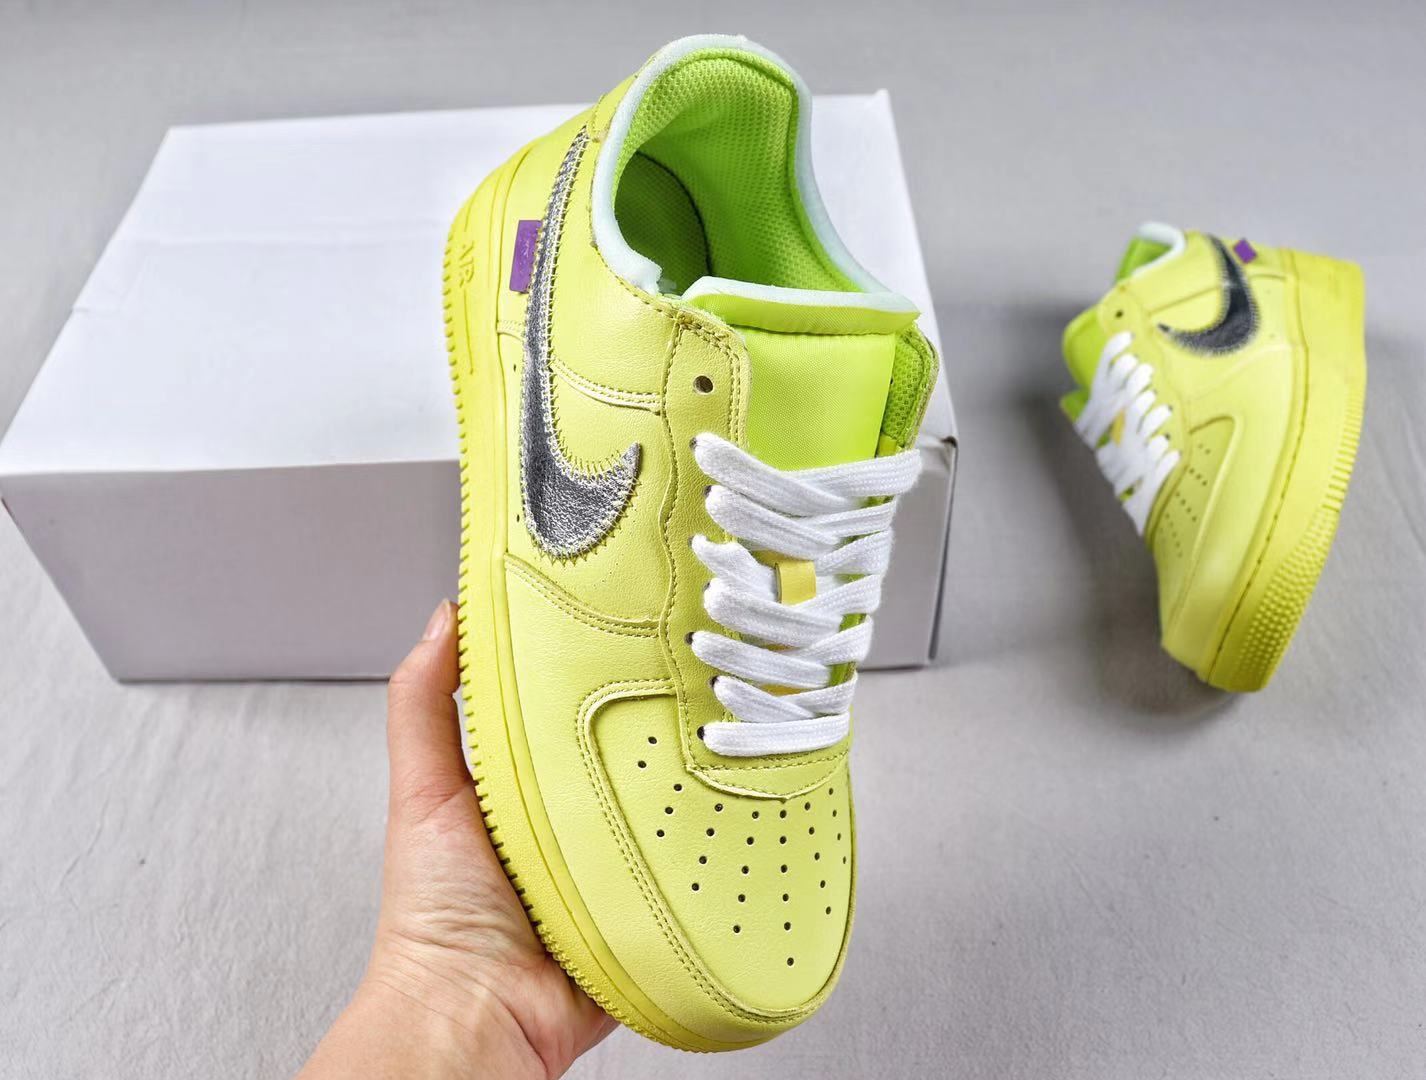 Off-White X Air Force 1 Low CI1173-700 Yellow/Metalic Silver In Stock